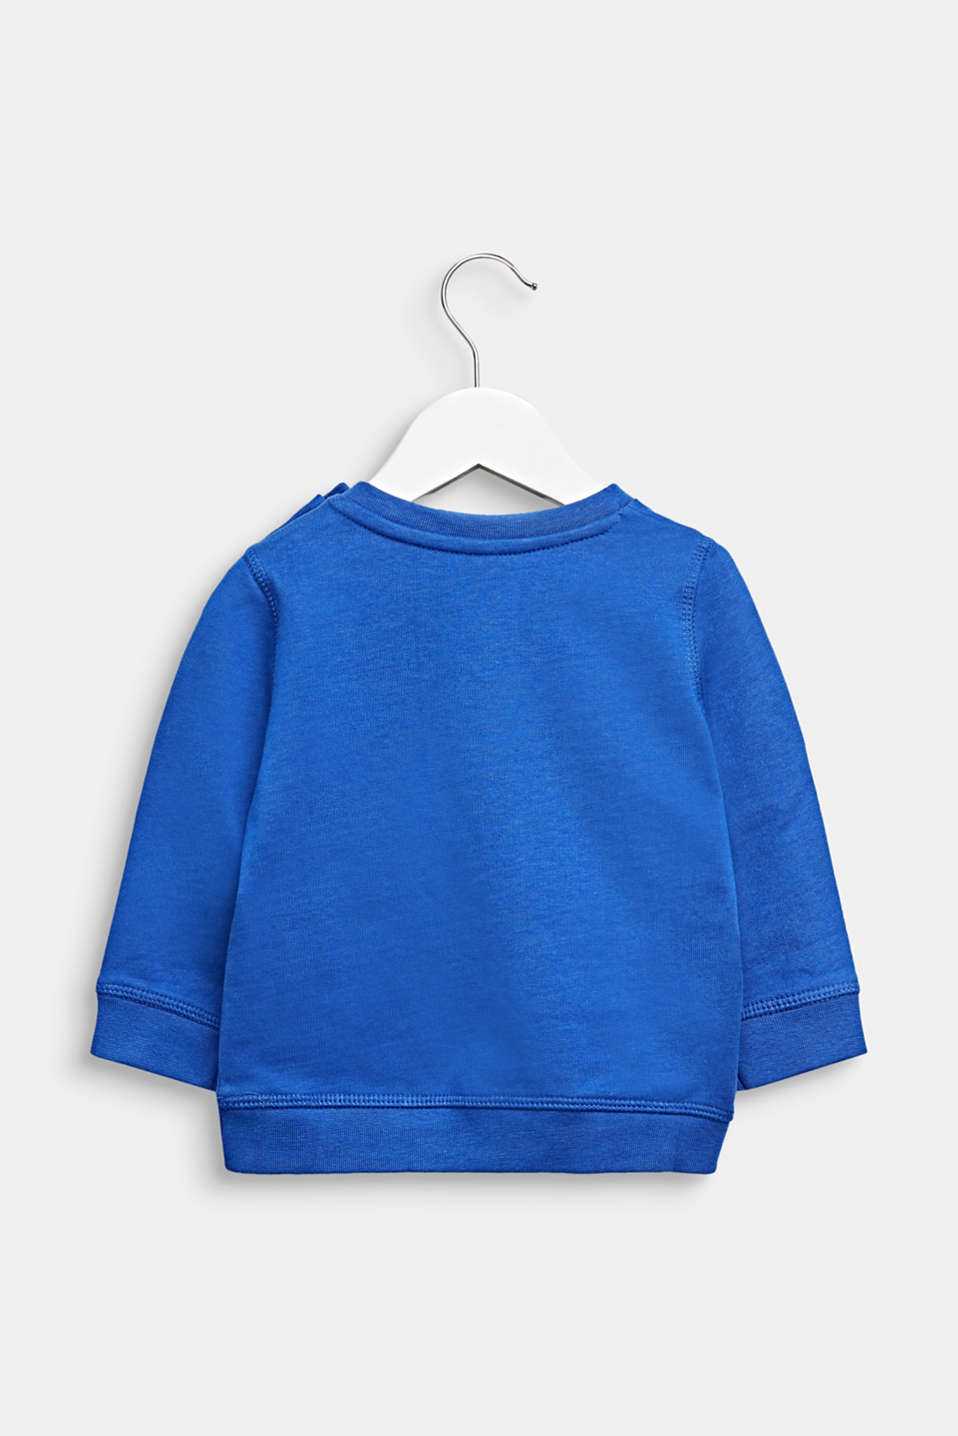 Statement sweatshirt made of 100% cotton, LCINFINITY BLUE, detail image number 1